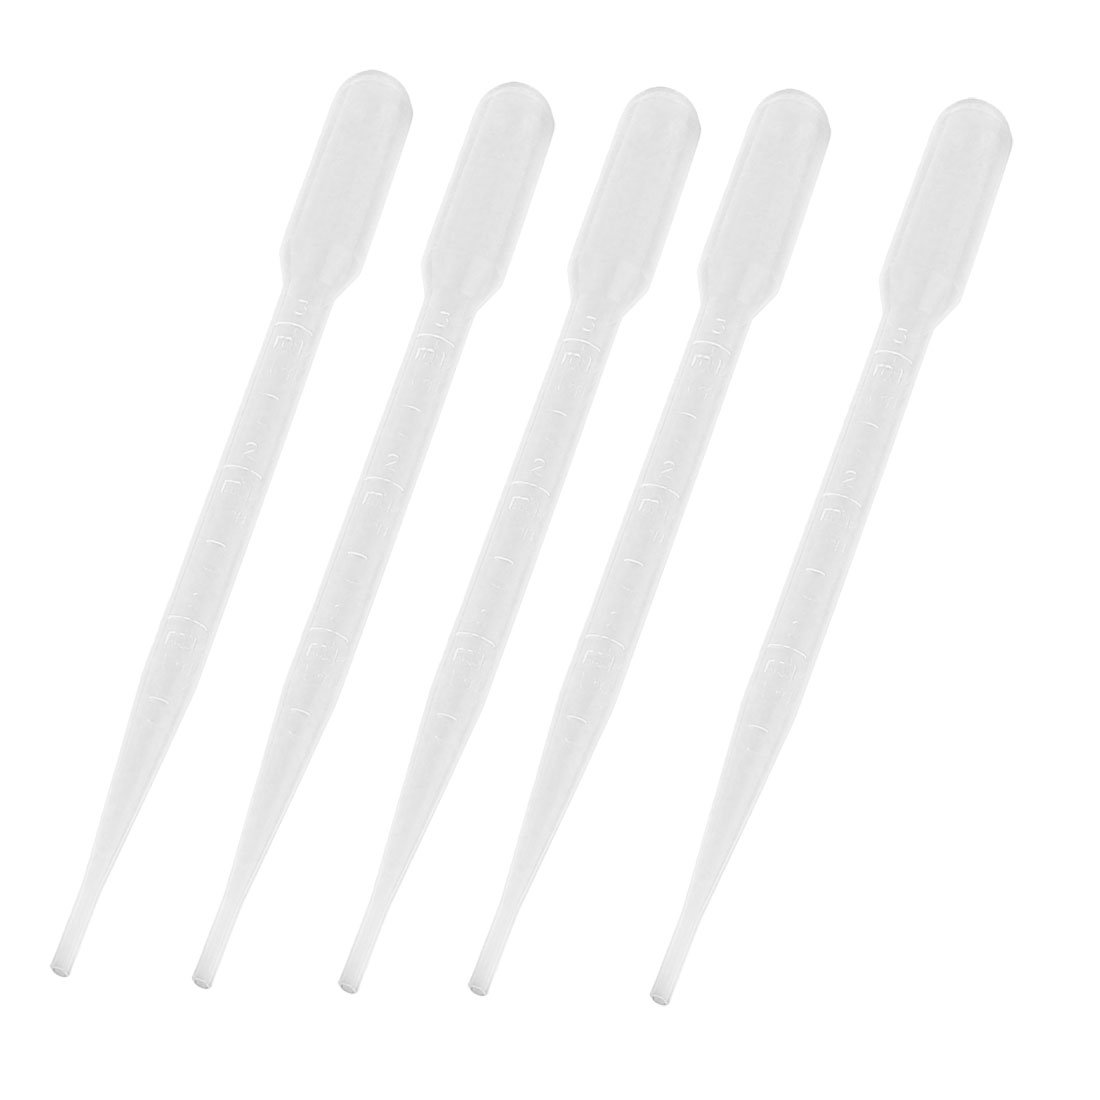 "Affordable 5 Pcs 3ml Capacity Lab Laboratory Clear Pipettes Droppers 6.1"" Long"